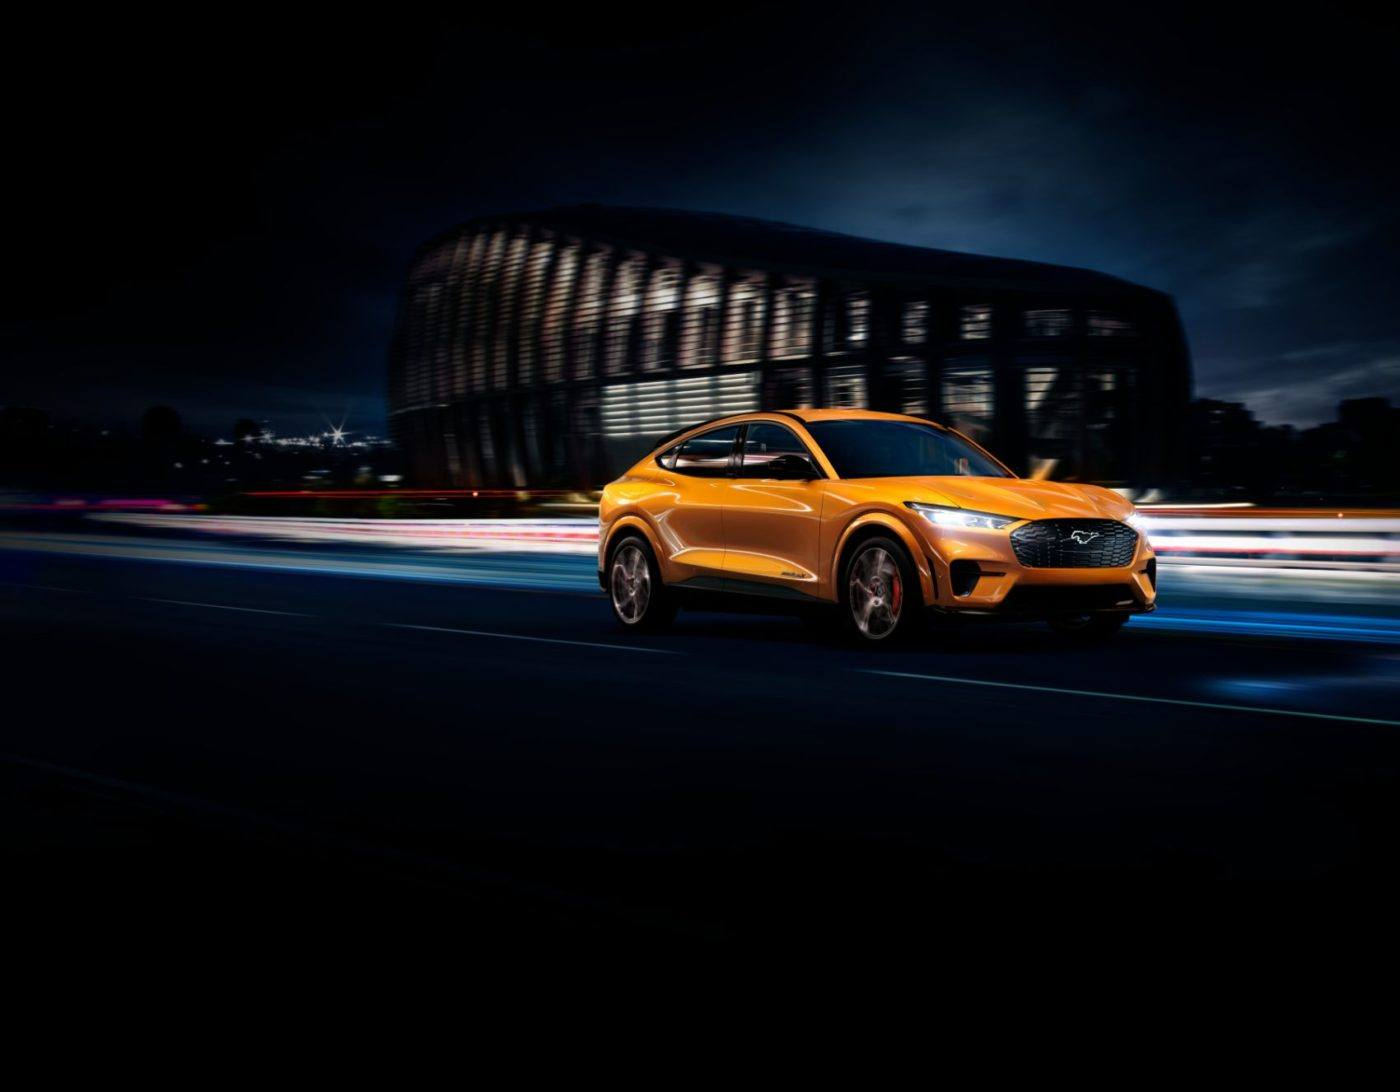 2021 Ford Mustang Mach-E Cyber Orange Front Profile